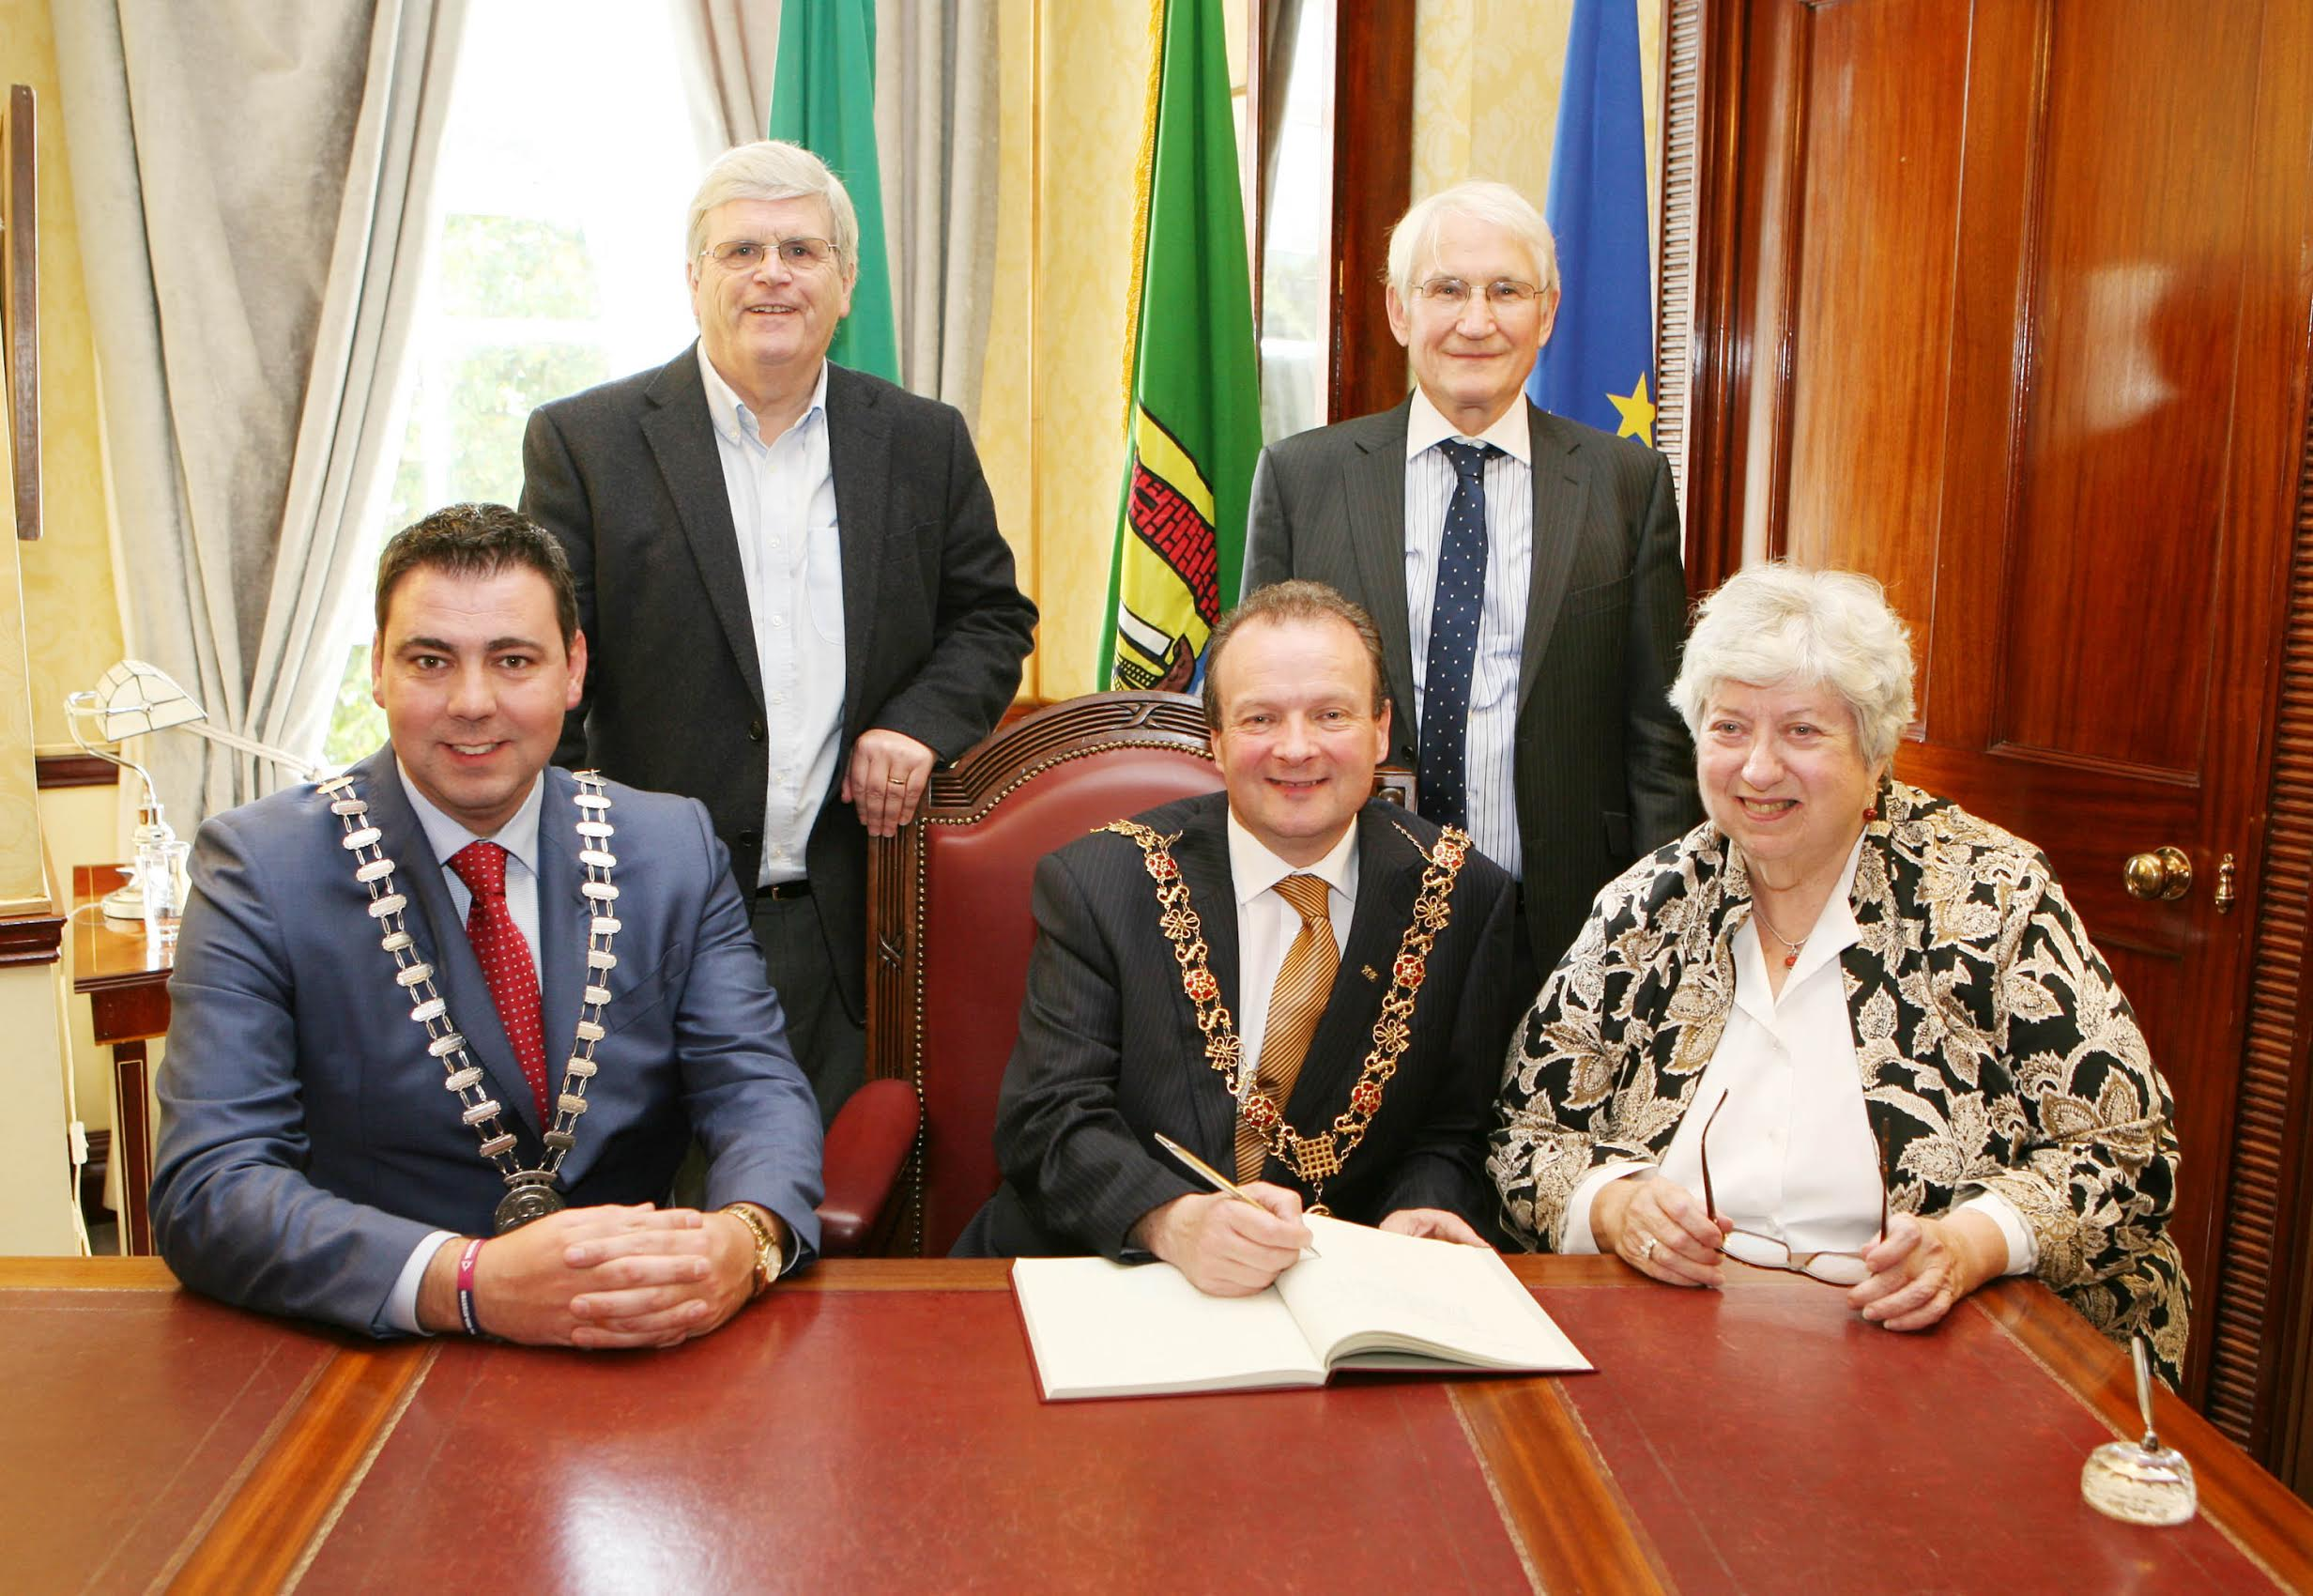 Daughter of Tip O'Neill meets Cork Lord Mayor and County Mayor